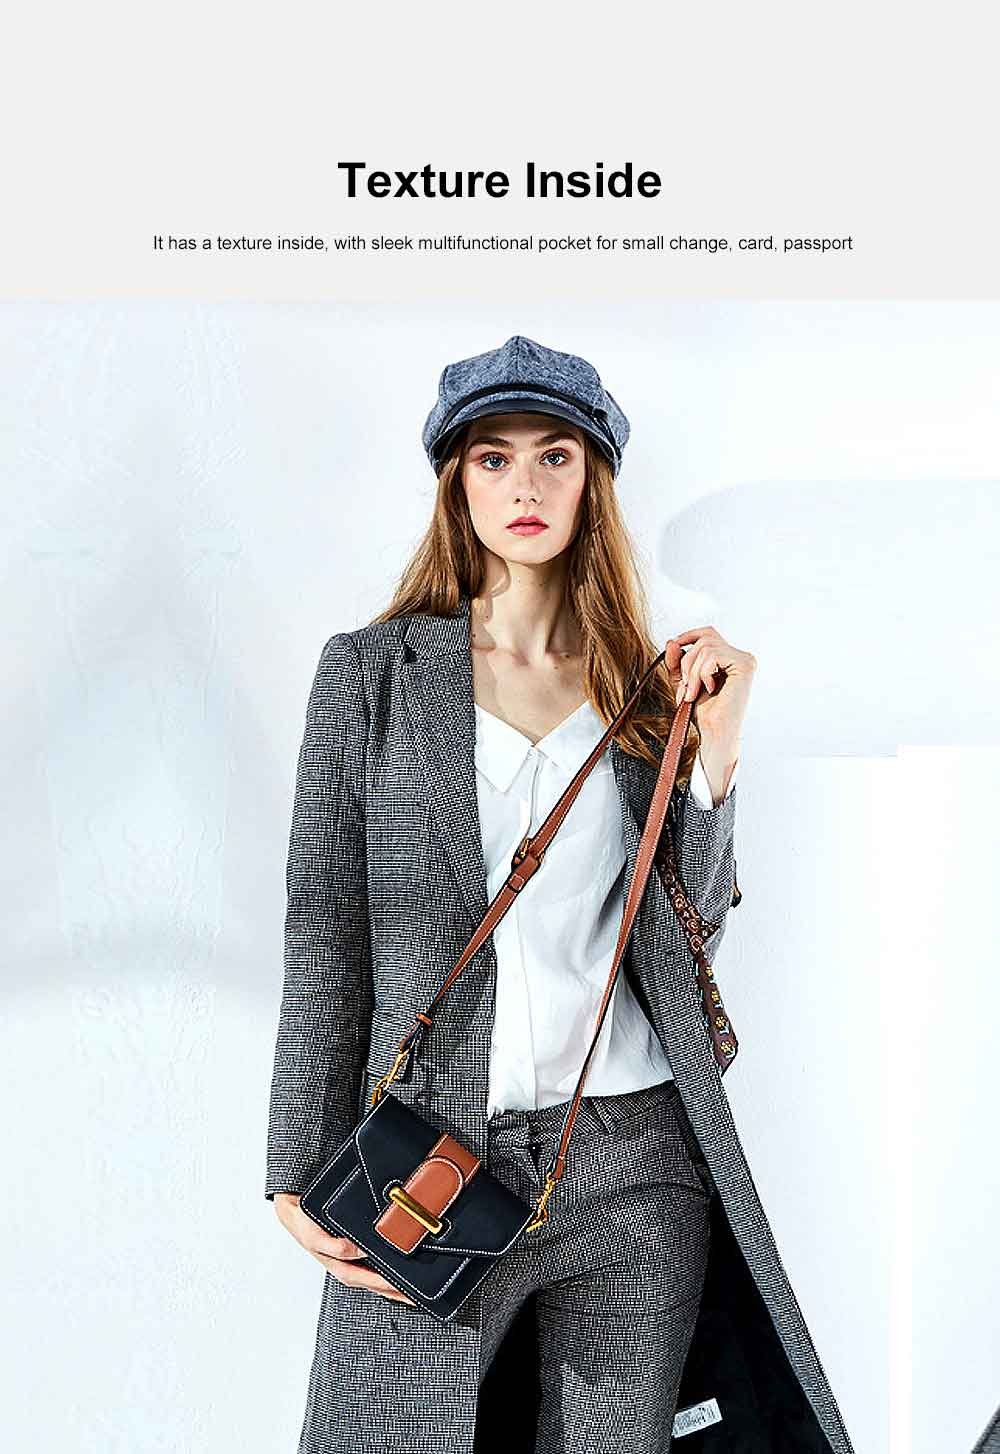 New Women's Bag Fashion Bag, Fashion Ladies Shoulder Bag, with Widen to Wear Buckle Design 5